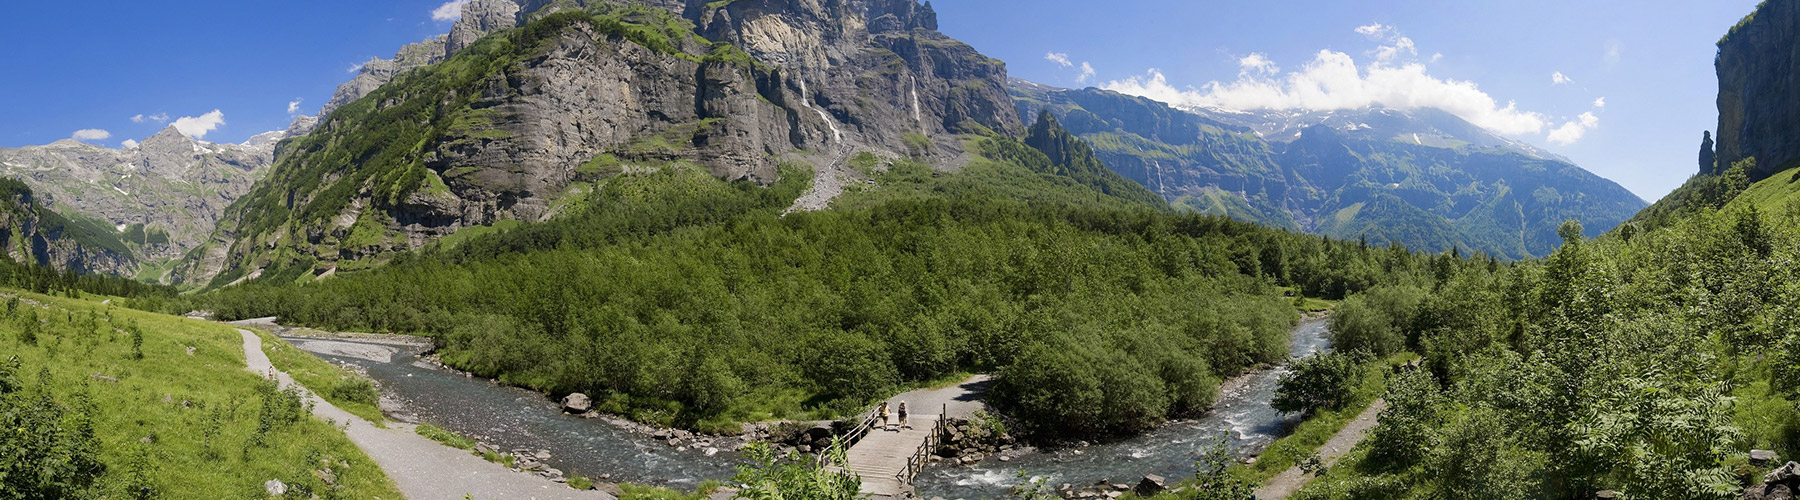 Summer in Haute-Savoie: 5 ideas for holidays in the mountains